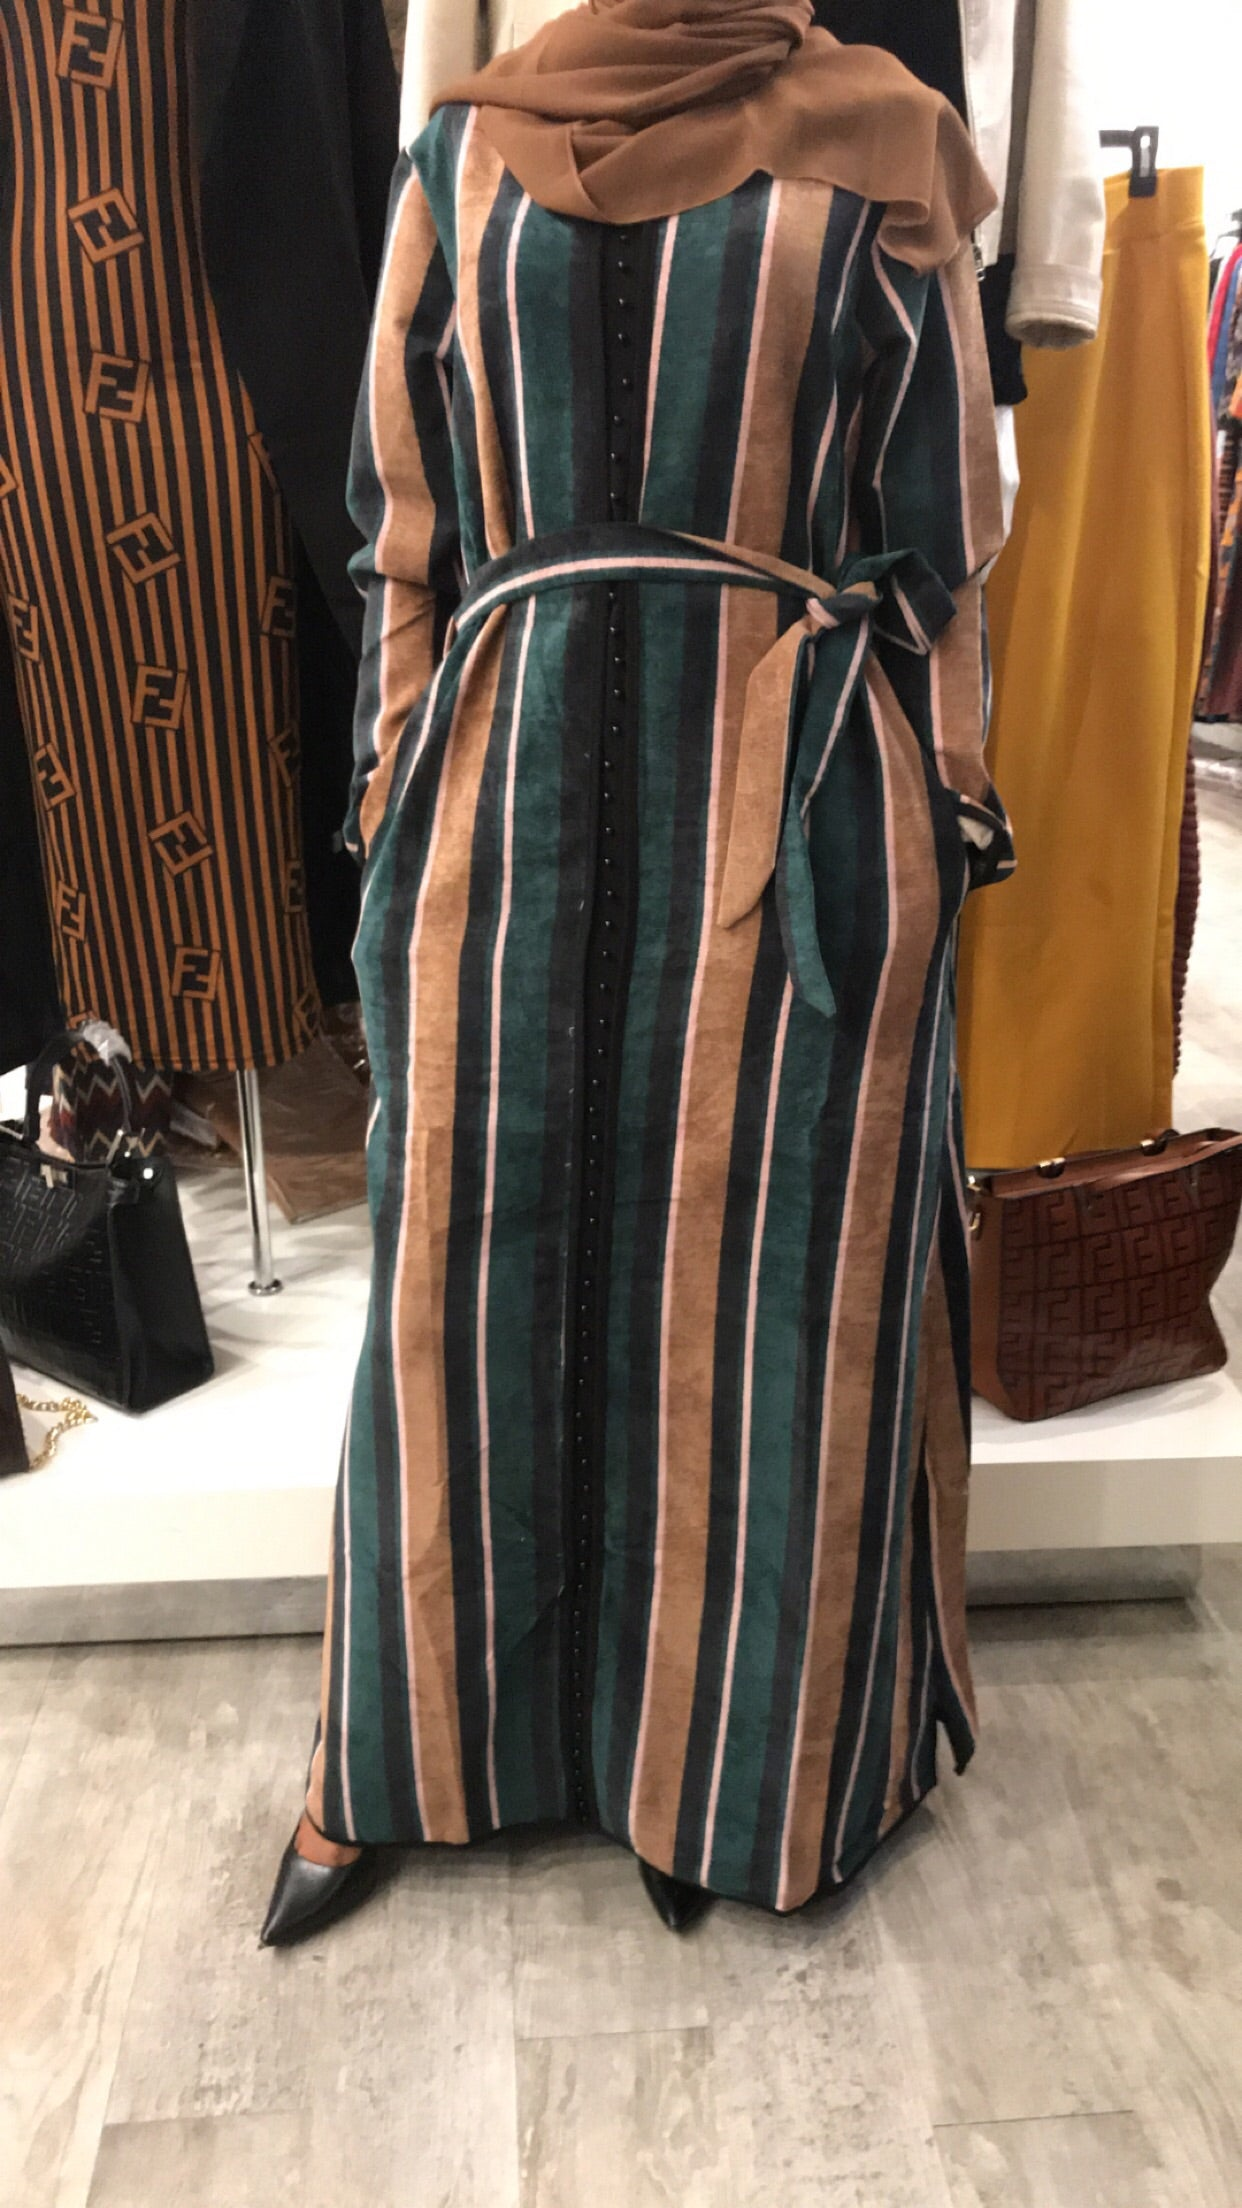 Winter Button Dress - Green / Black / Brown Stripe - ZIZI Boutique